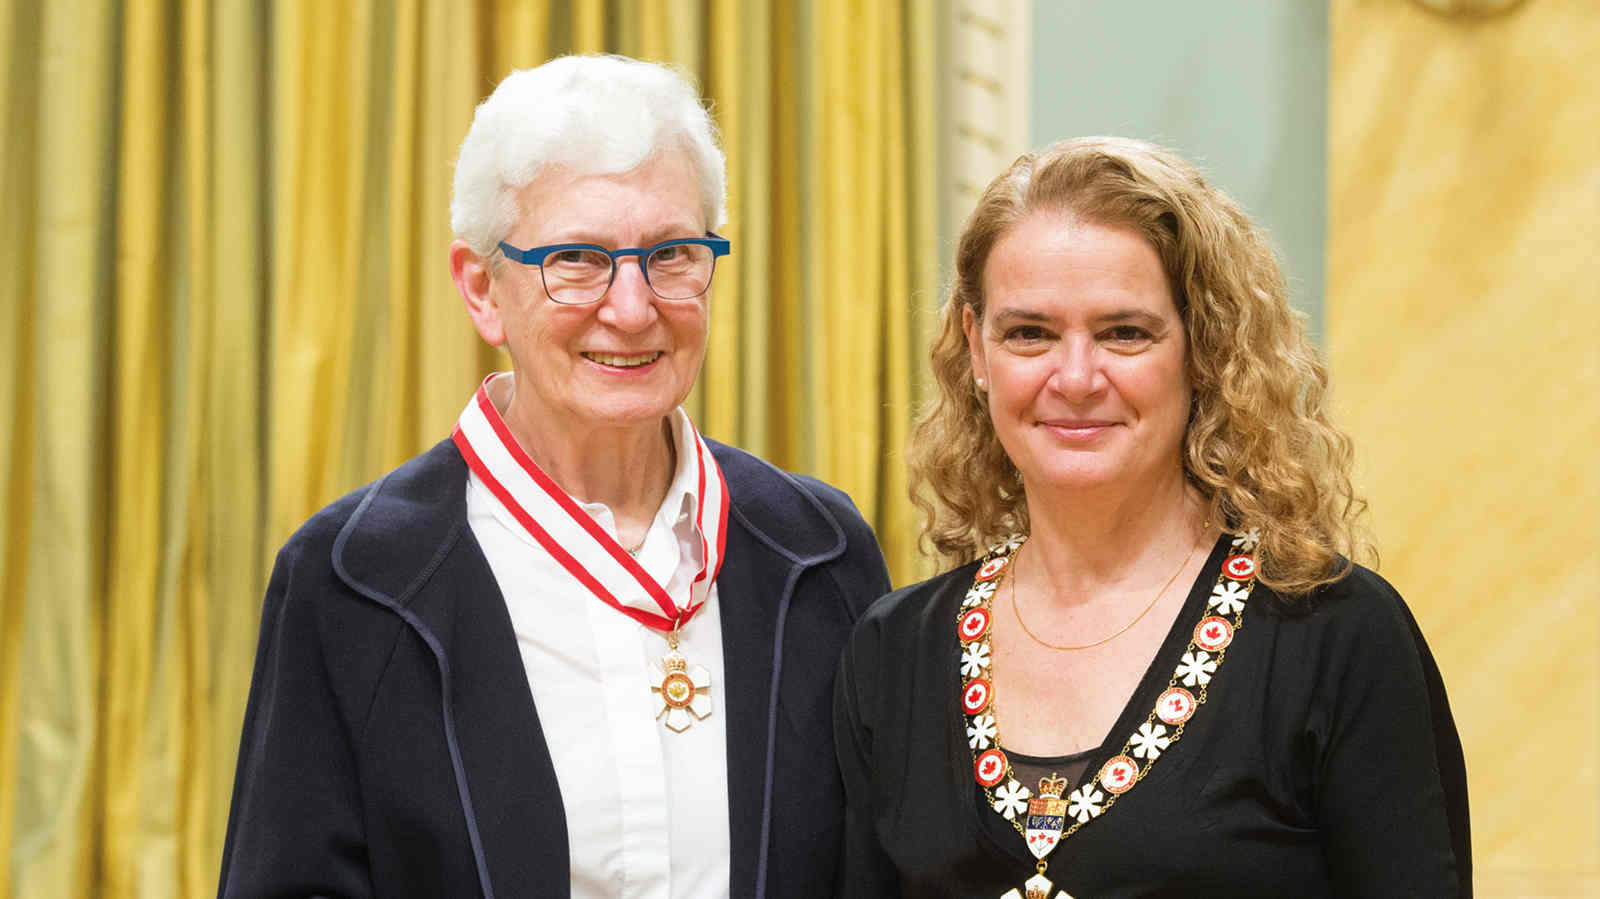 Her Excellency presents the Officer insignia of the Order of Canada to Darleen Bogart, O.C.